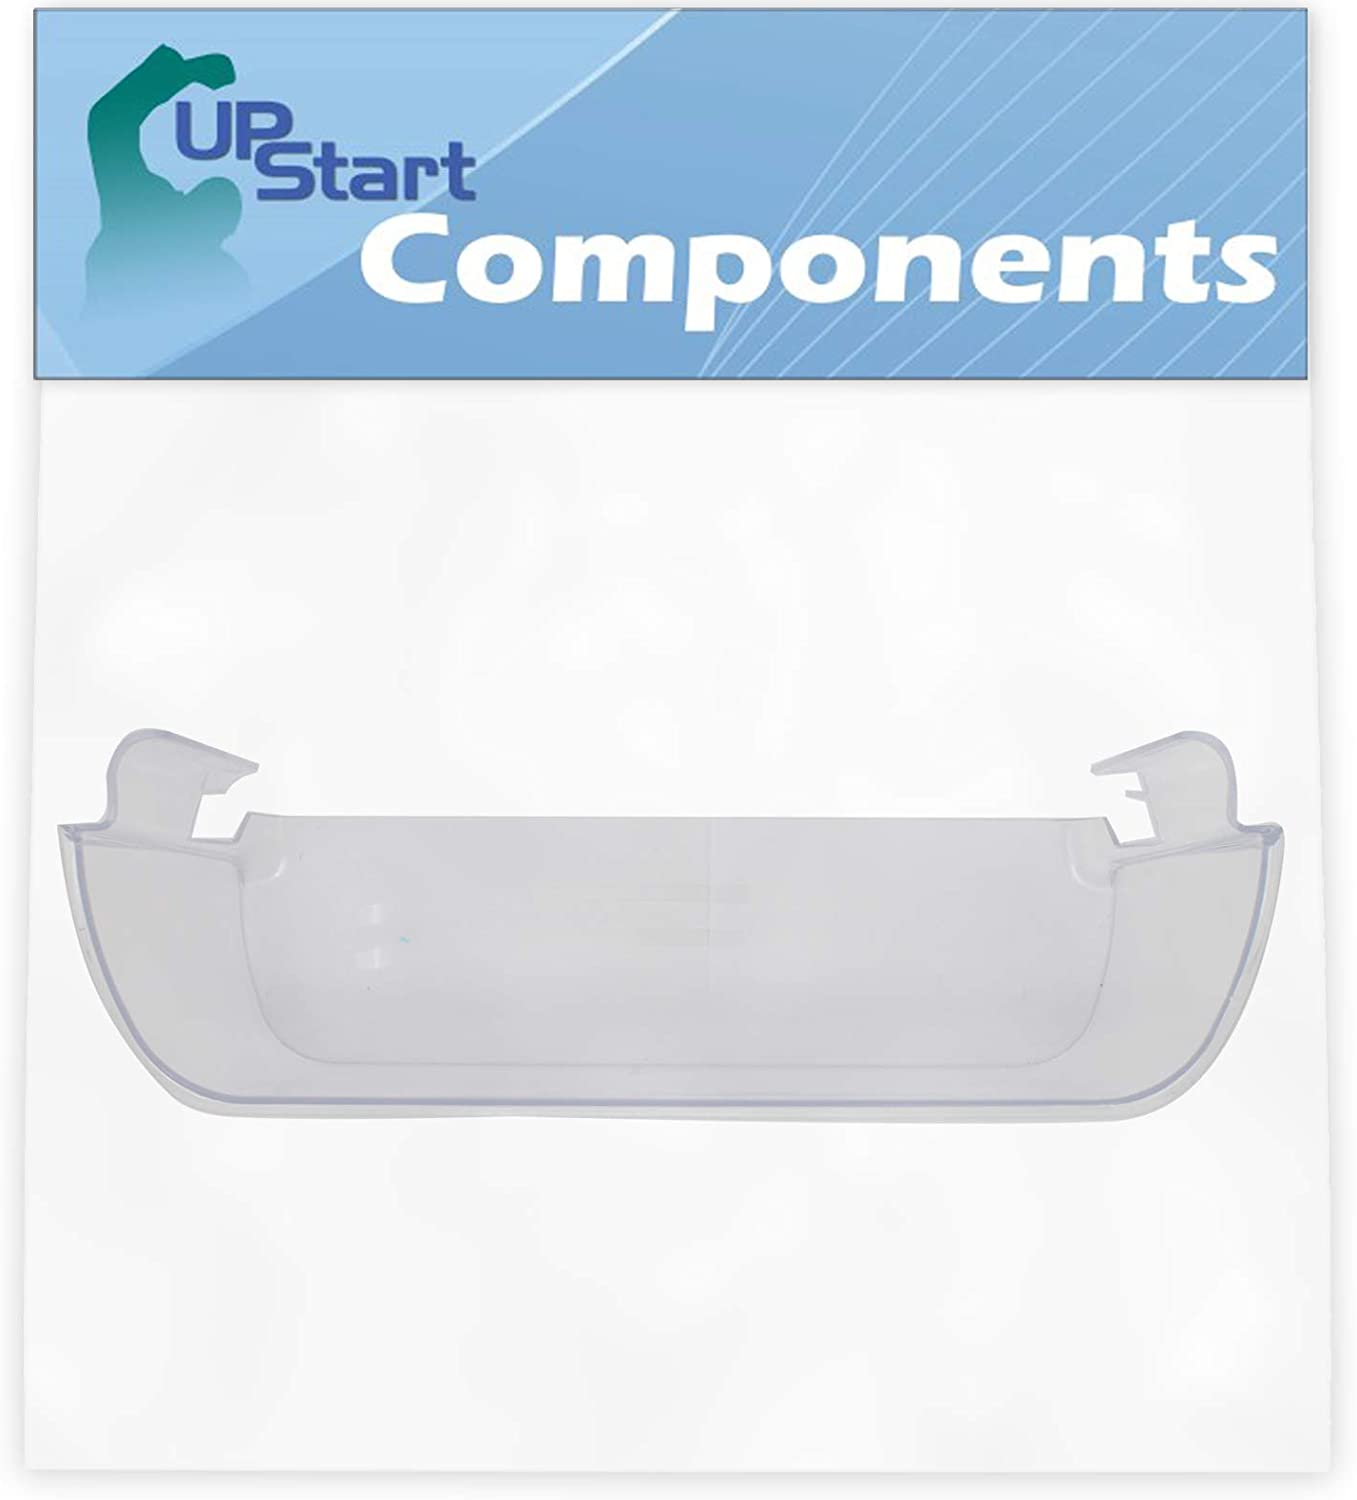 240323002 Refrigerator Clear Door Surprise price Free Shipping New Replacement Bin for Frigidaire